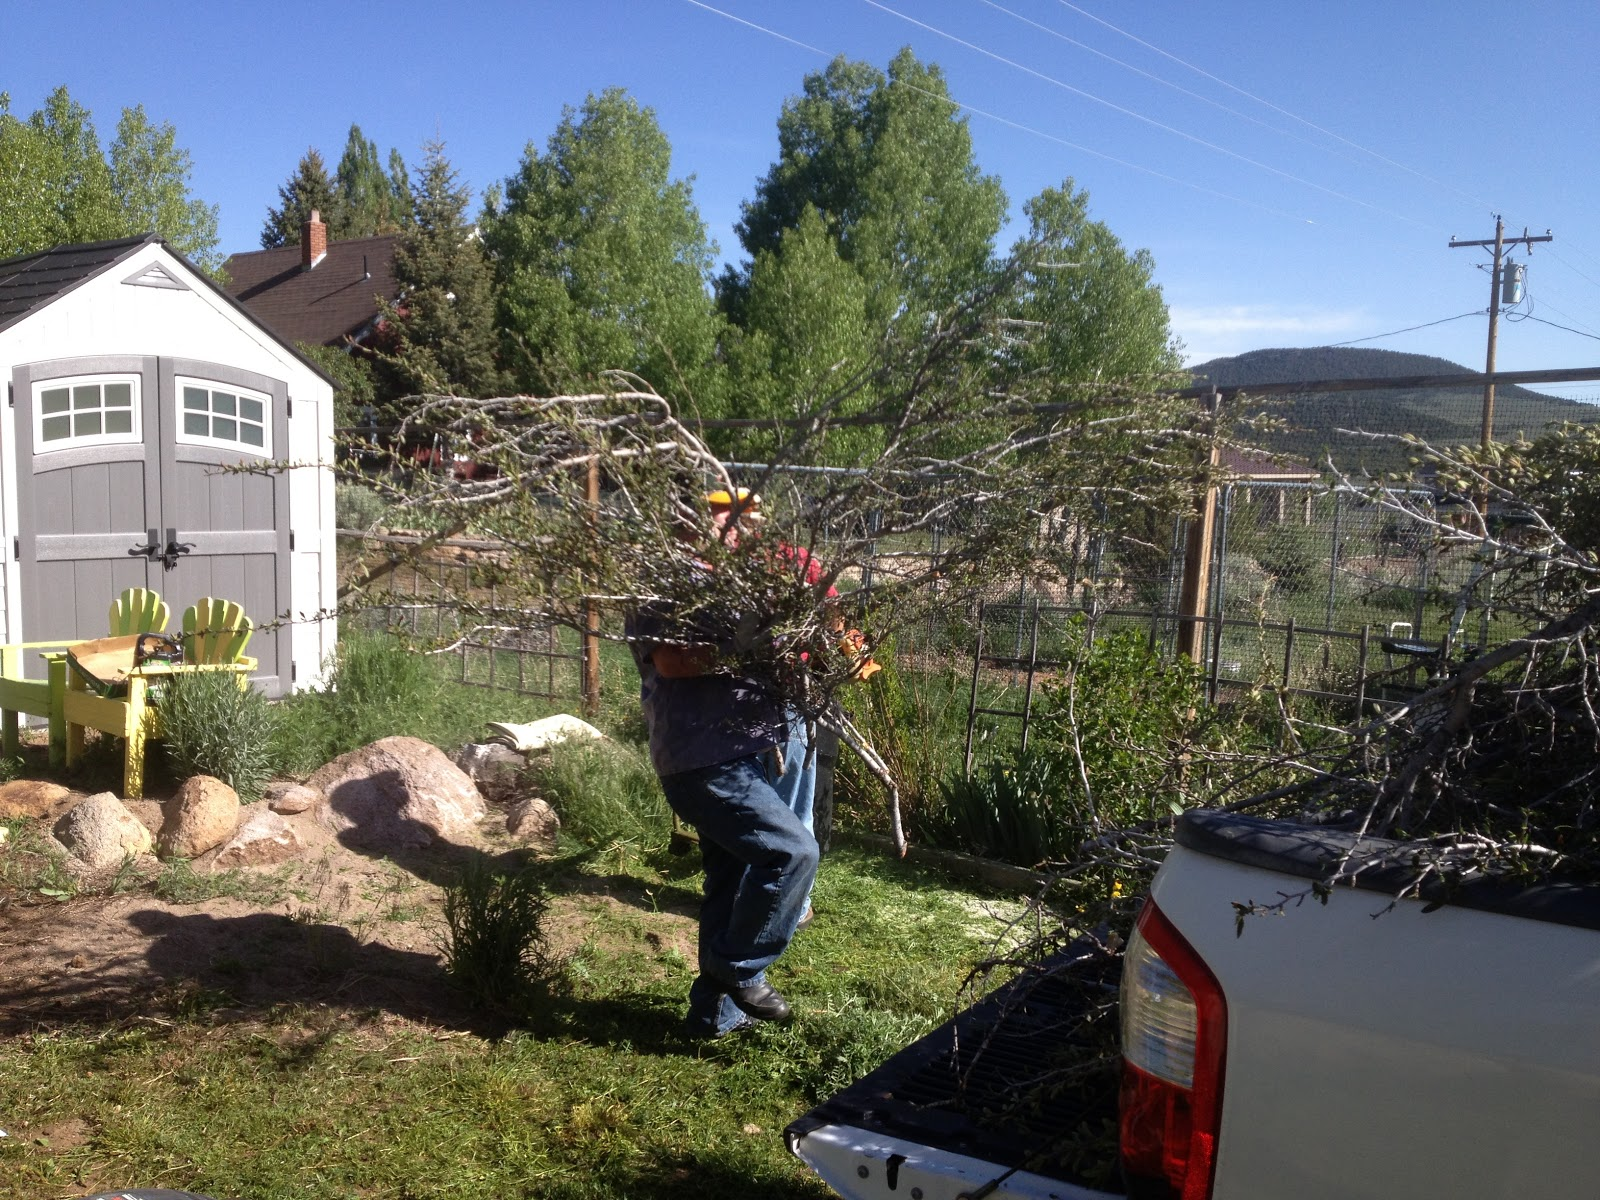 pine valley guys Lawn aeration with lawn aeration guys in pine valley, ut to help maintain a proper thatch level in the lawn thatch,.